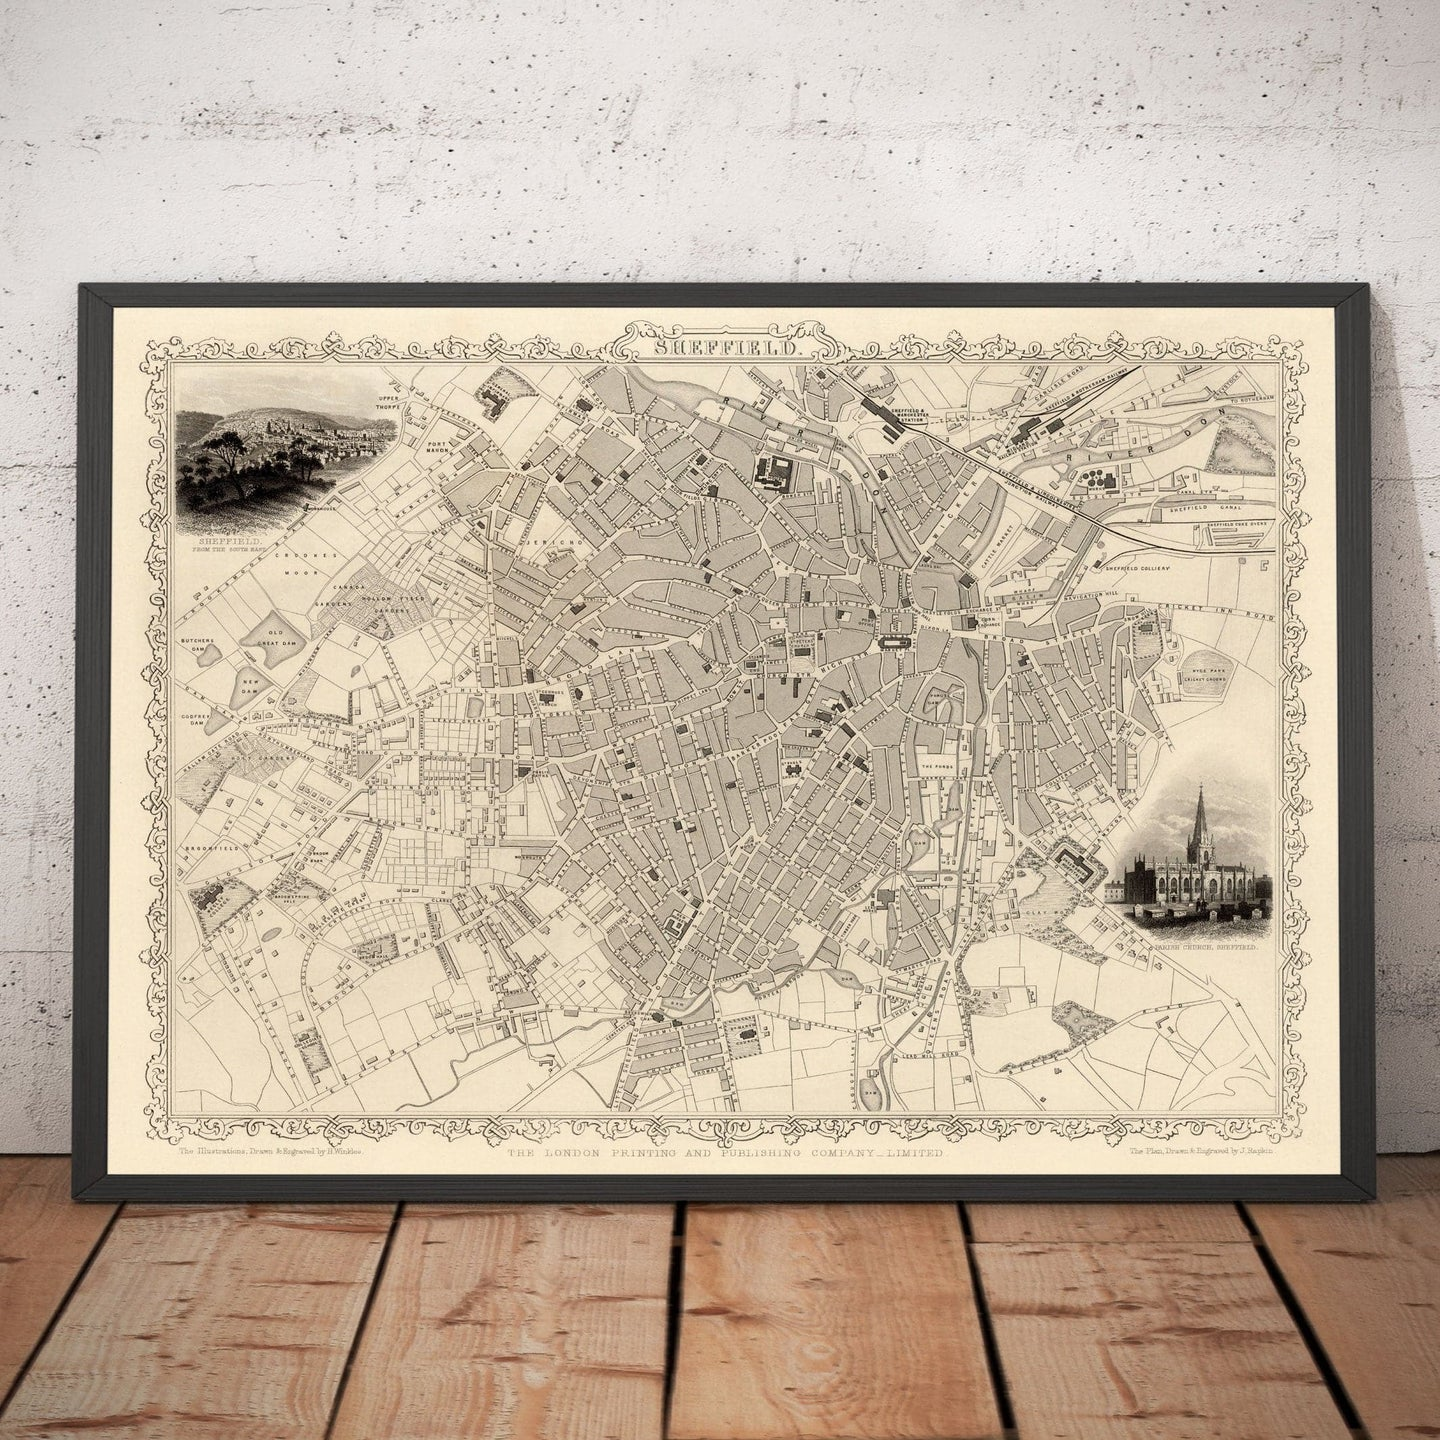 Old Map of Sheffield, Yorkshire in 1851 by Tallis, Rapkin - Antique Vintage City Wall Art - Christmas or Birthday Gift - Framed or Unframed